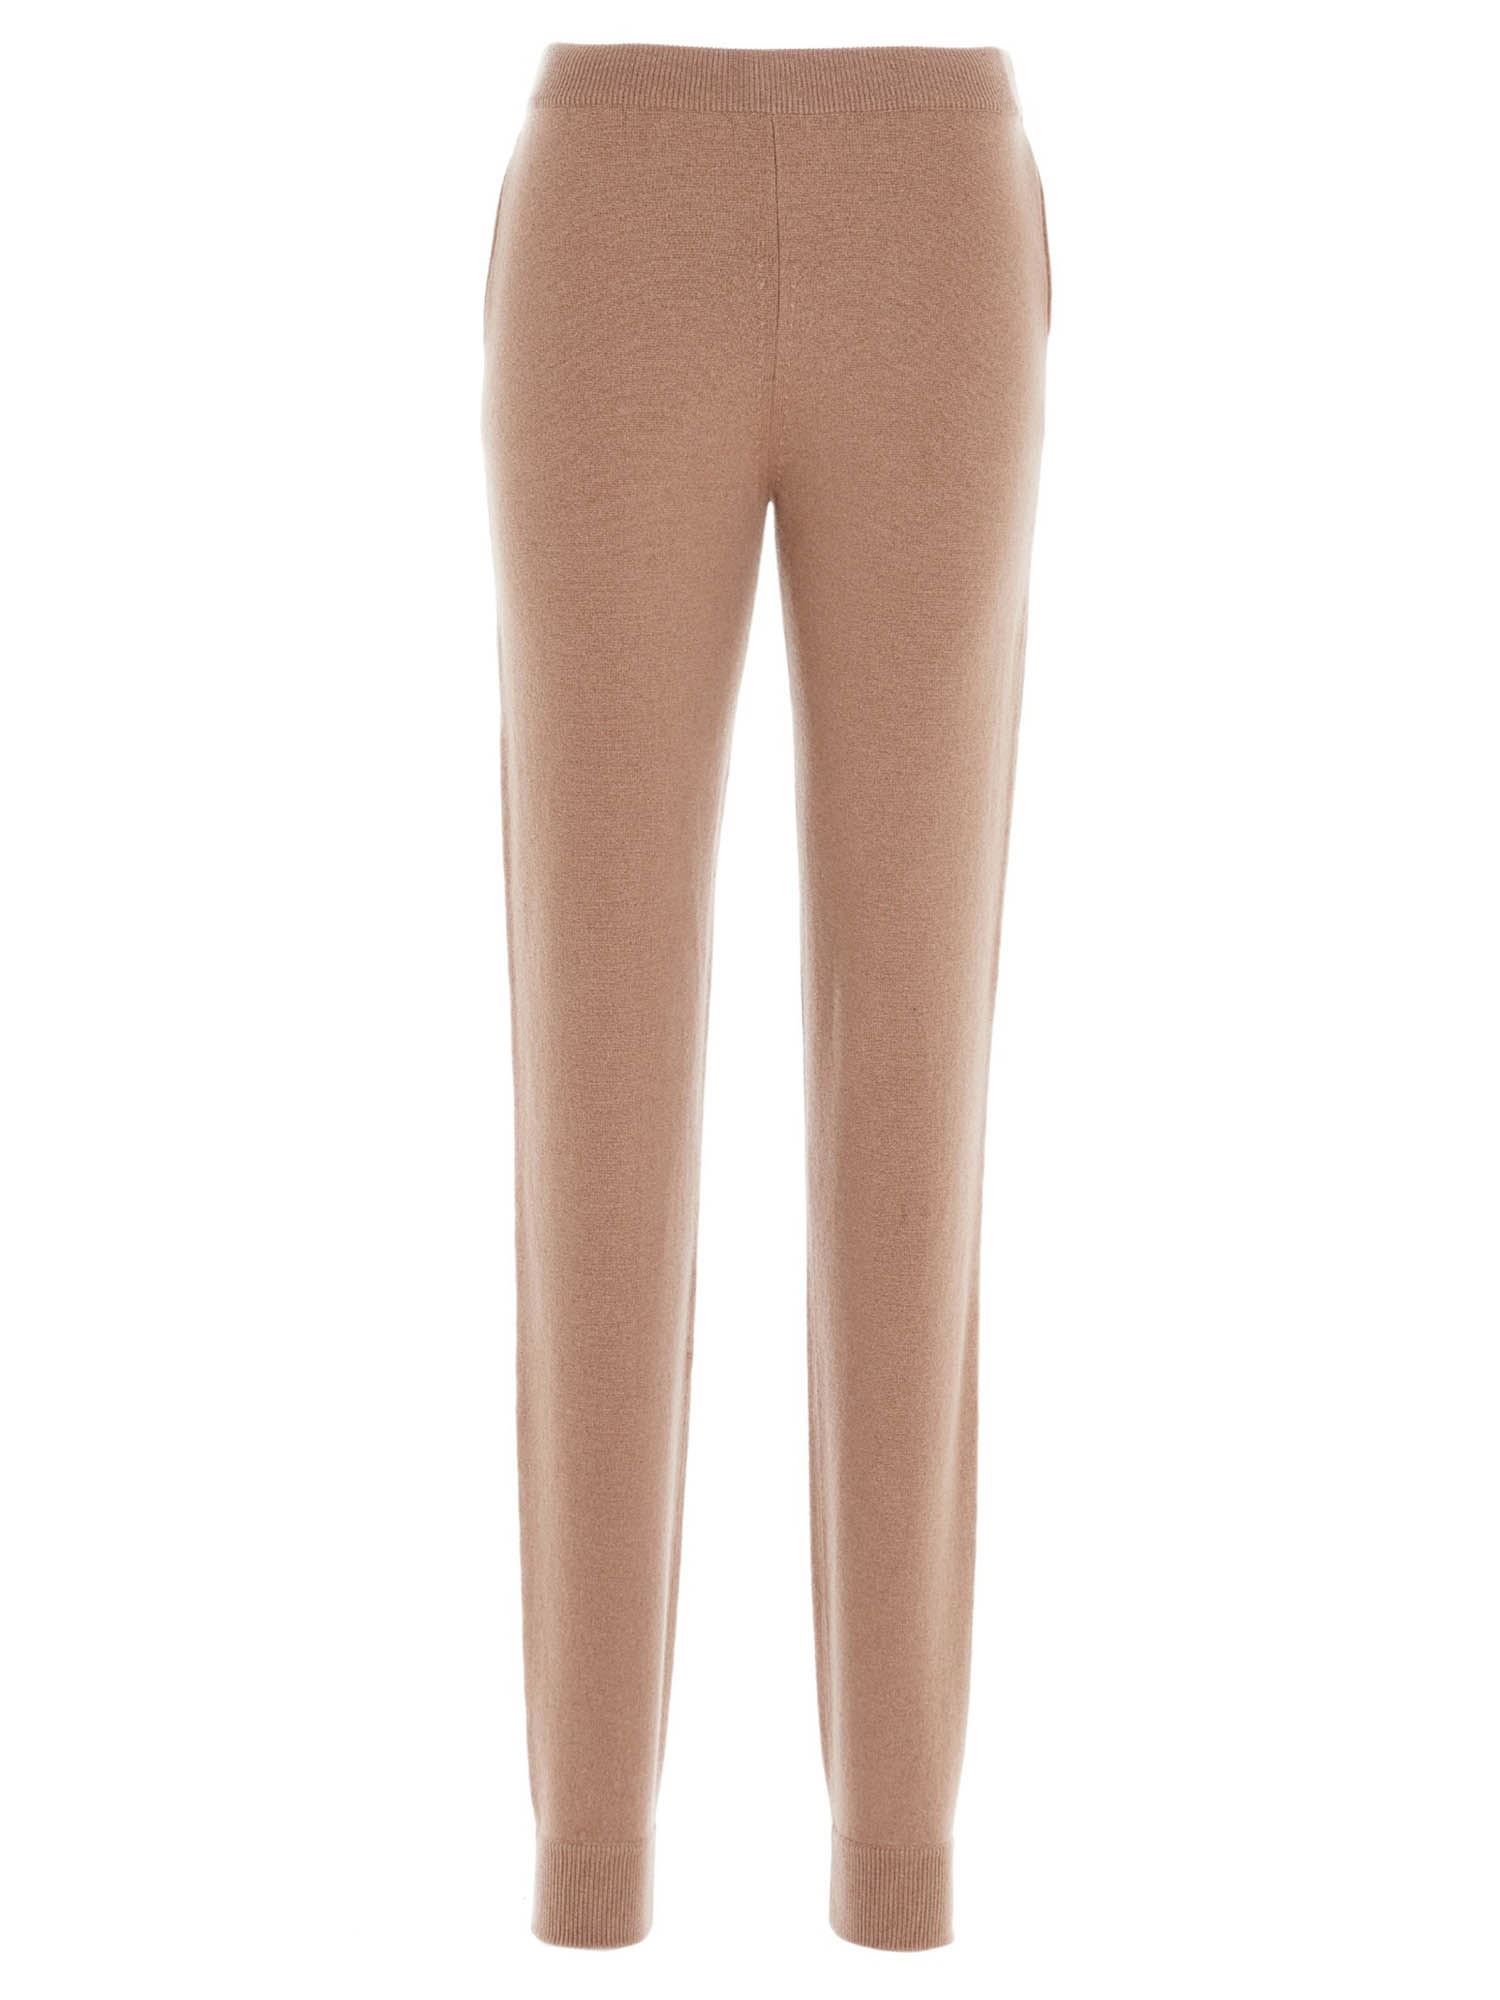 Tom Ford CASHMERE PANTS IN CAMEL COLOR